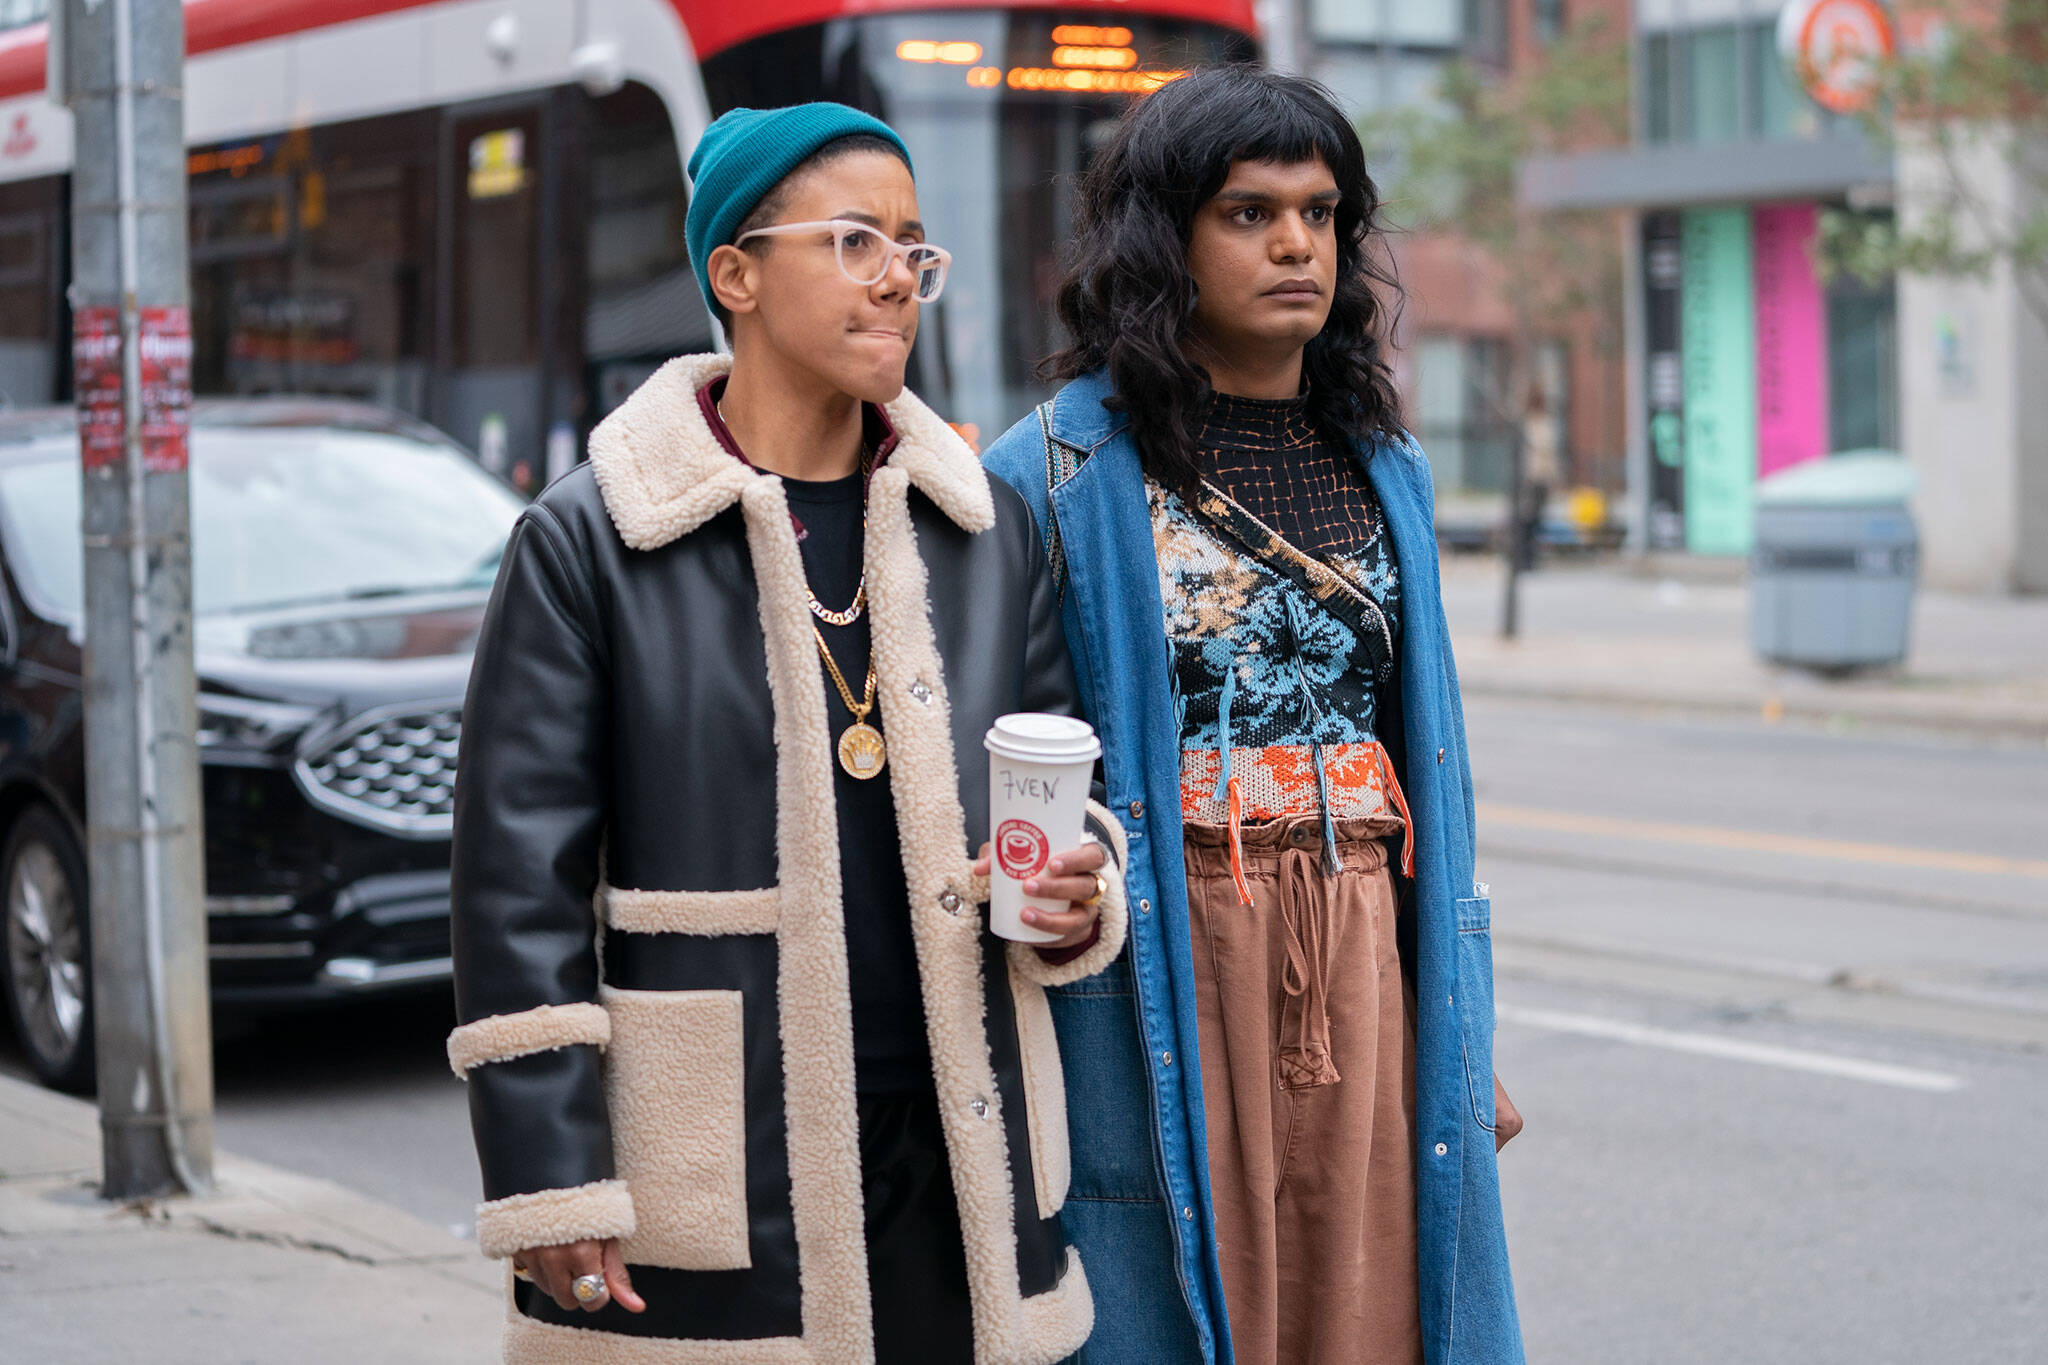 New TV show filmed in Toronto will be the first of its kind